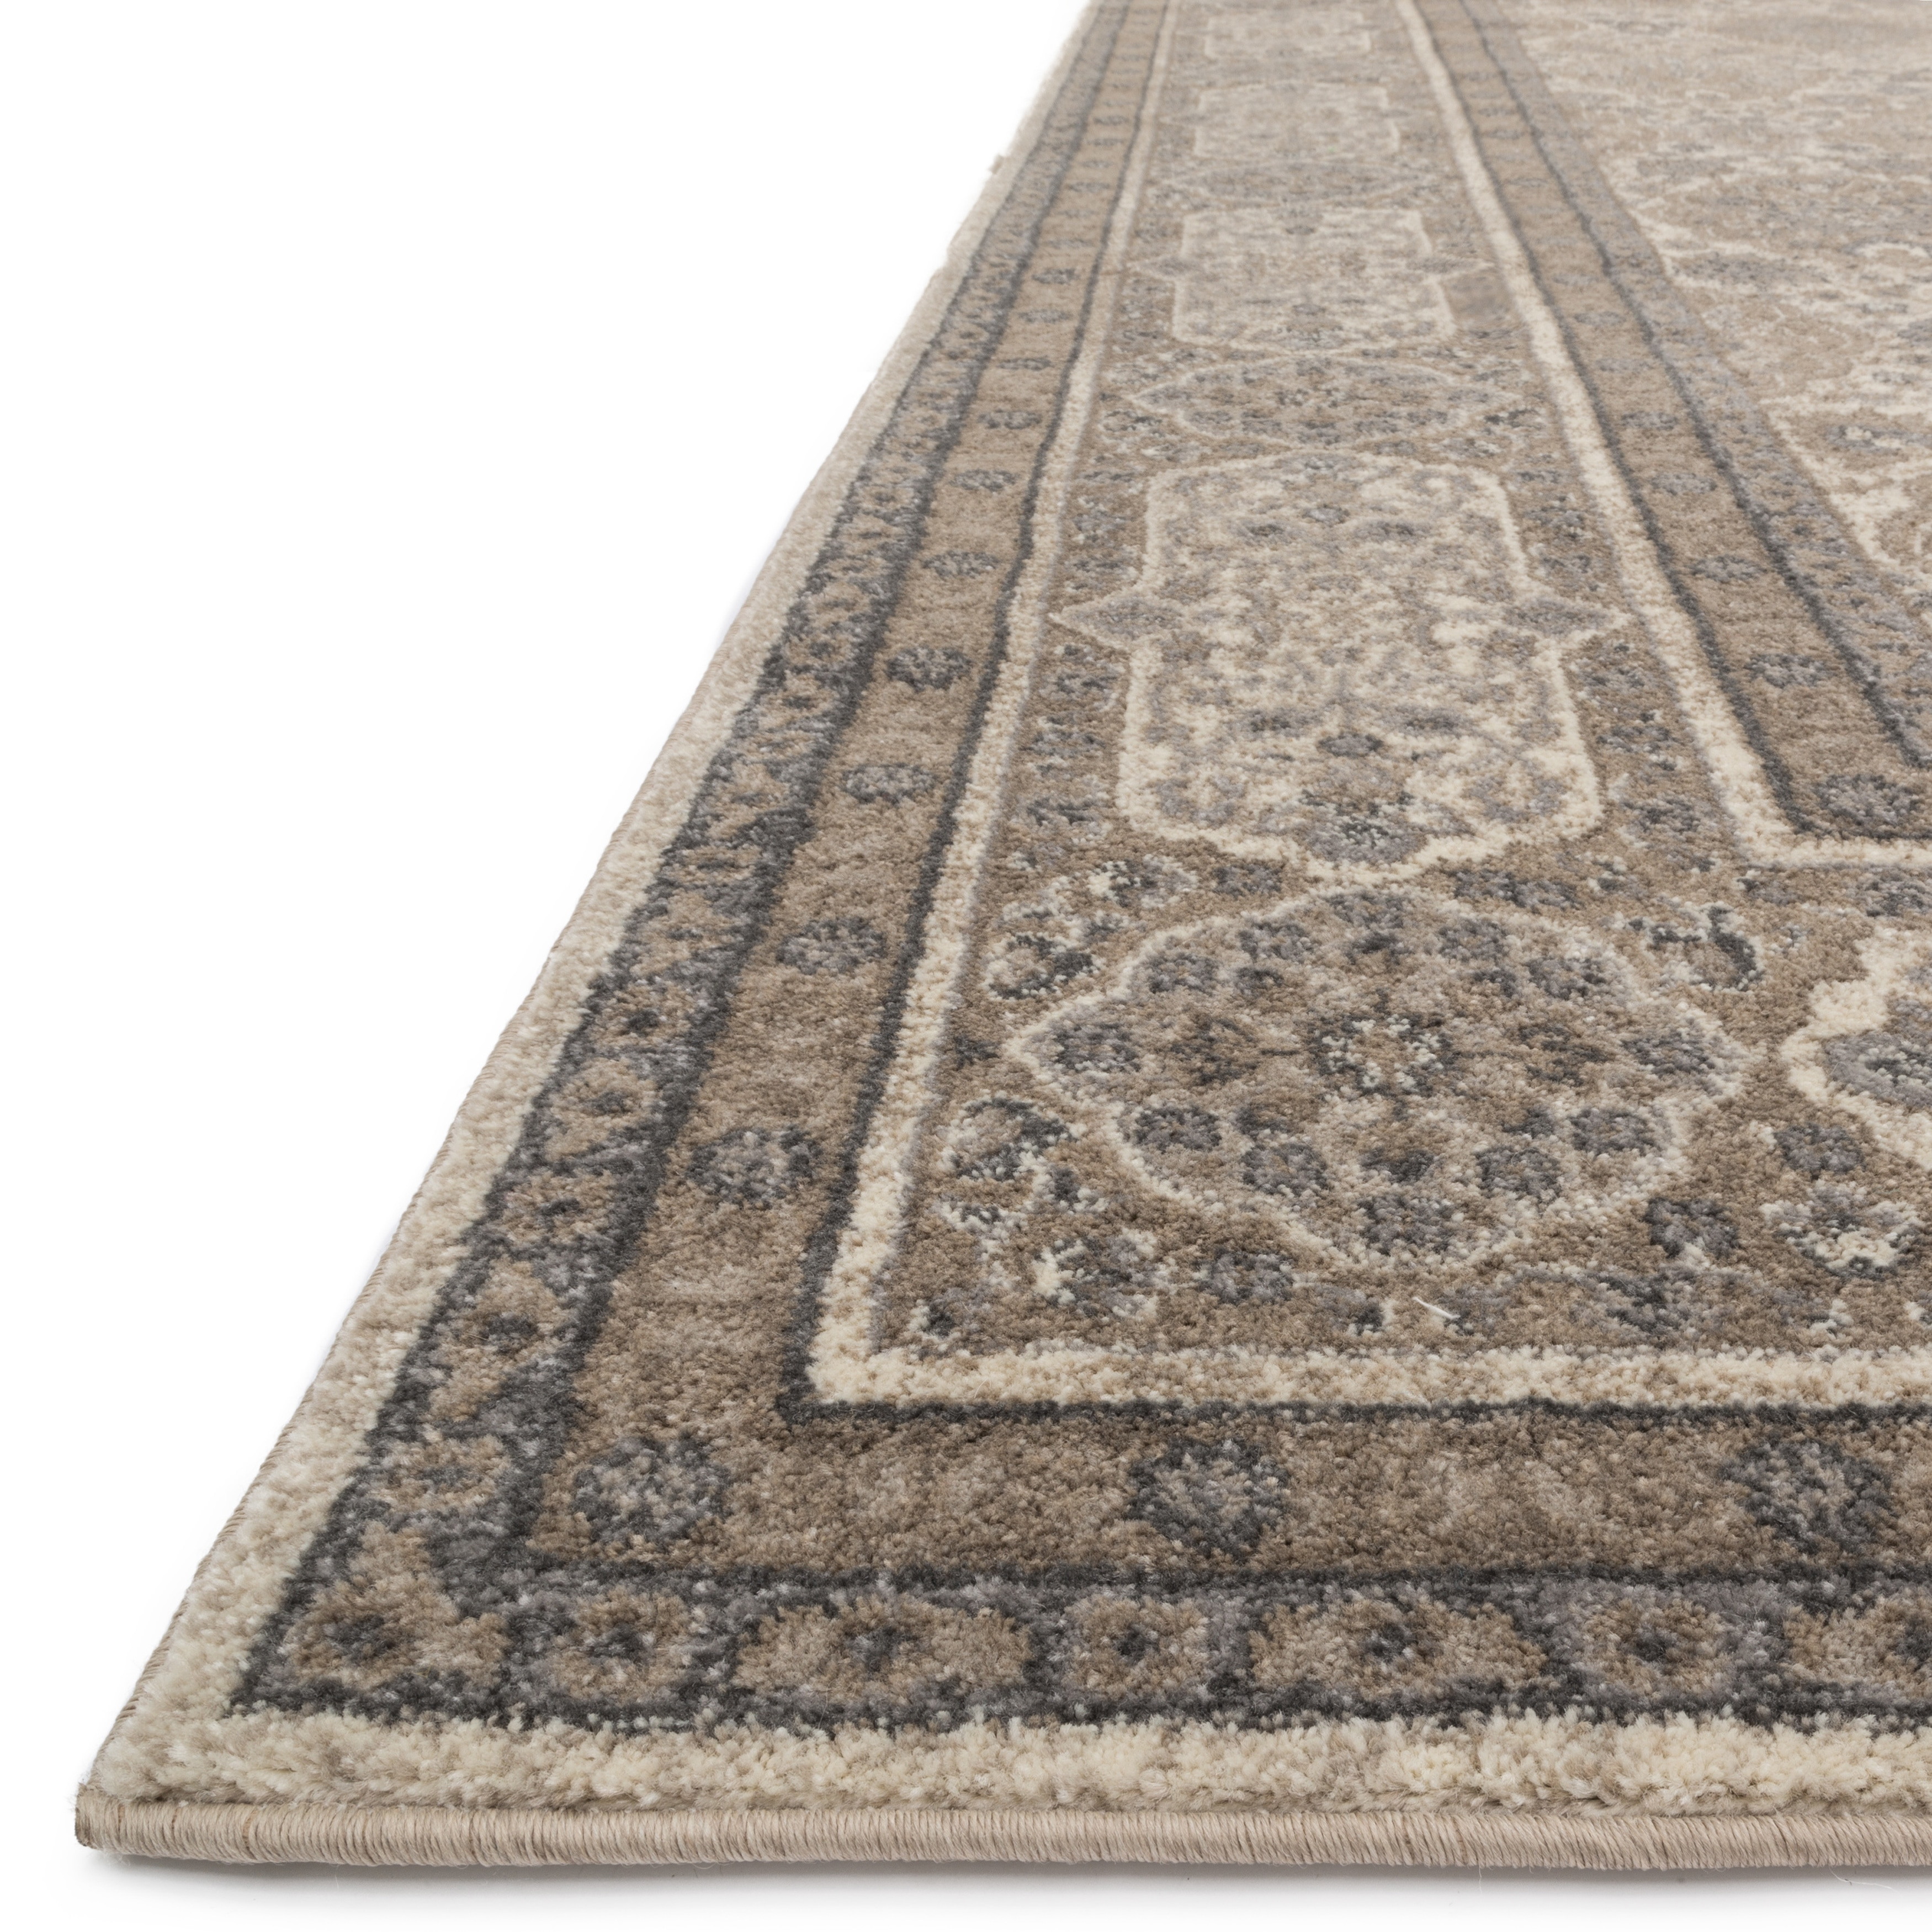 Shop Traditional Beige Taupe Floral Border Rug 96 X 13 On X8 Kendrick T Shirt Size M Sale Free Shipping Today 11807726